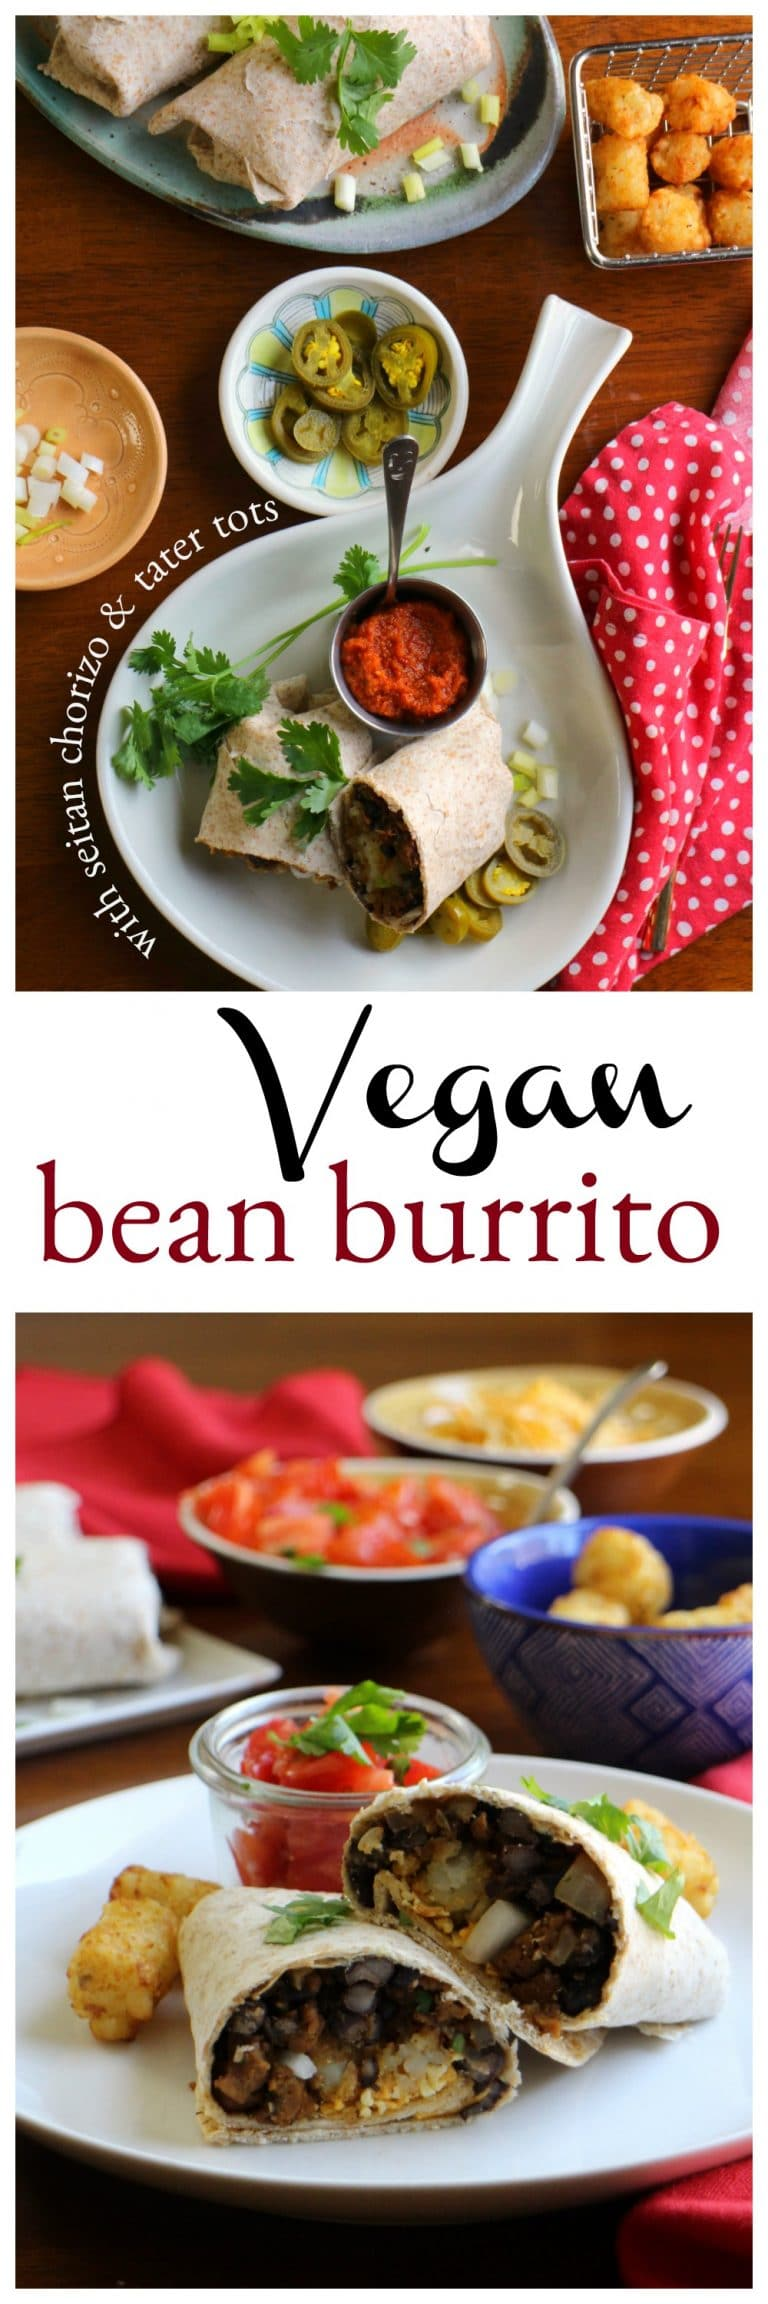 Overhead vegan bean burrito on plate with tater tots, jalapenos, and salsa.